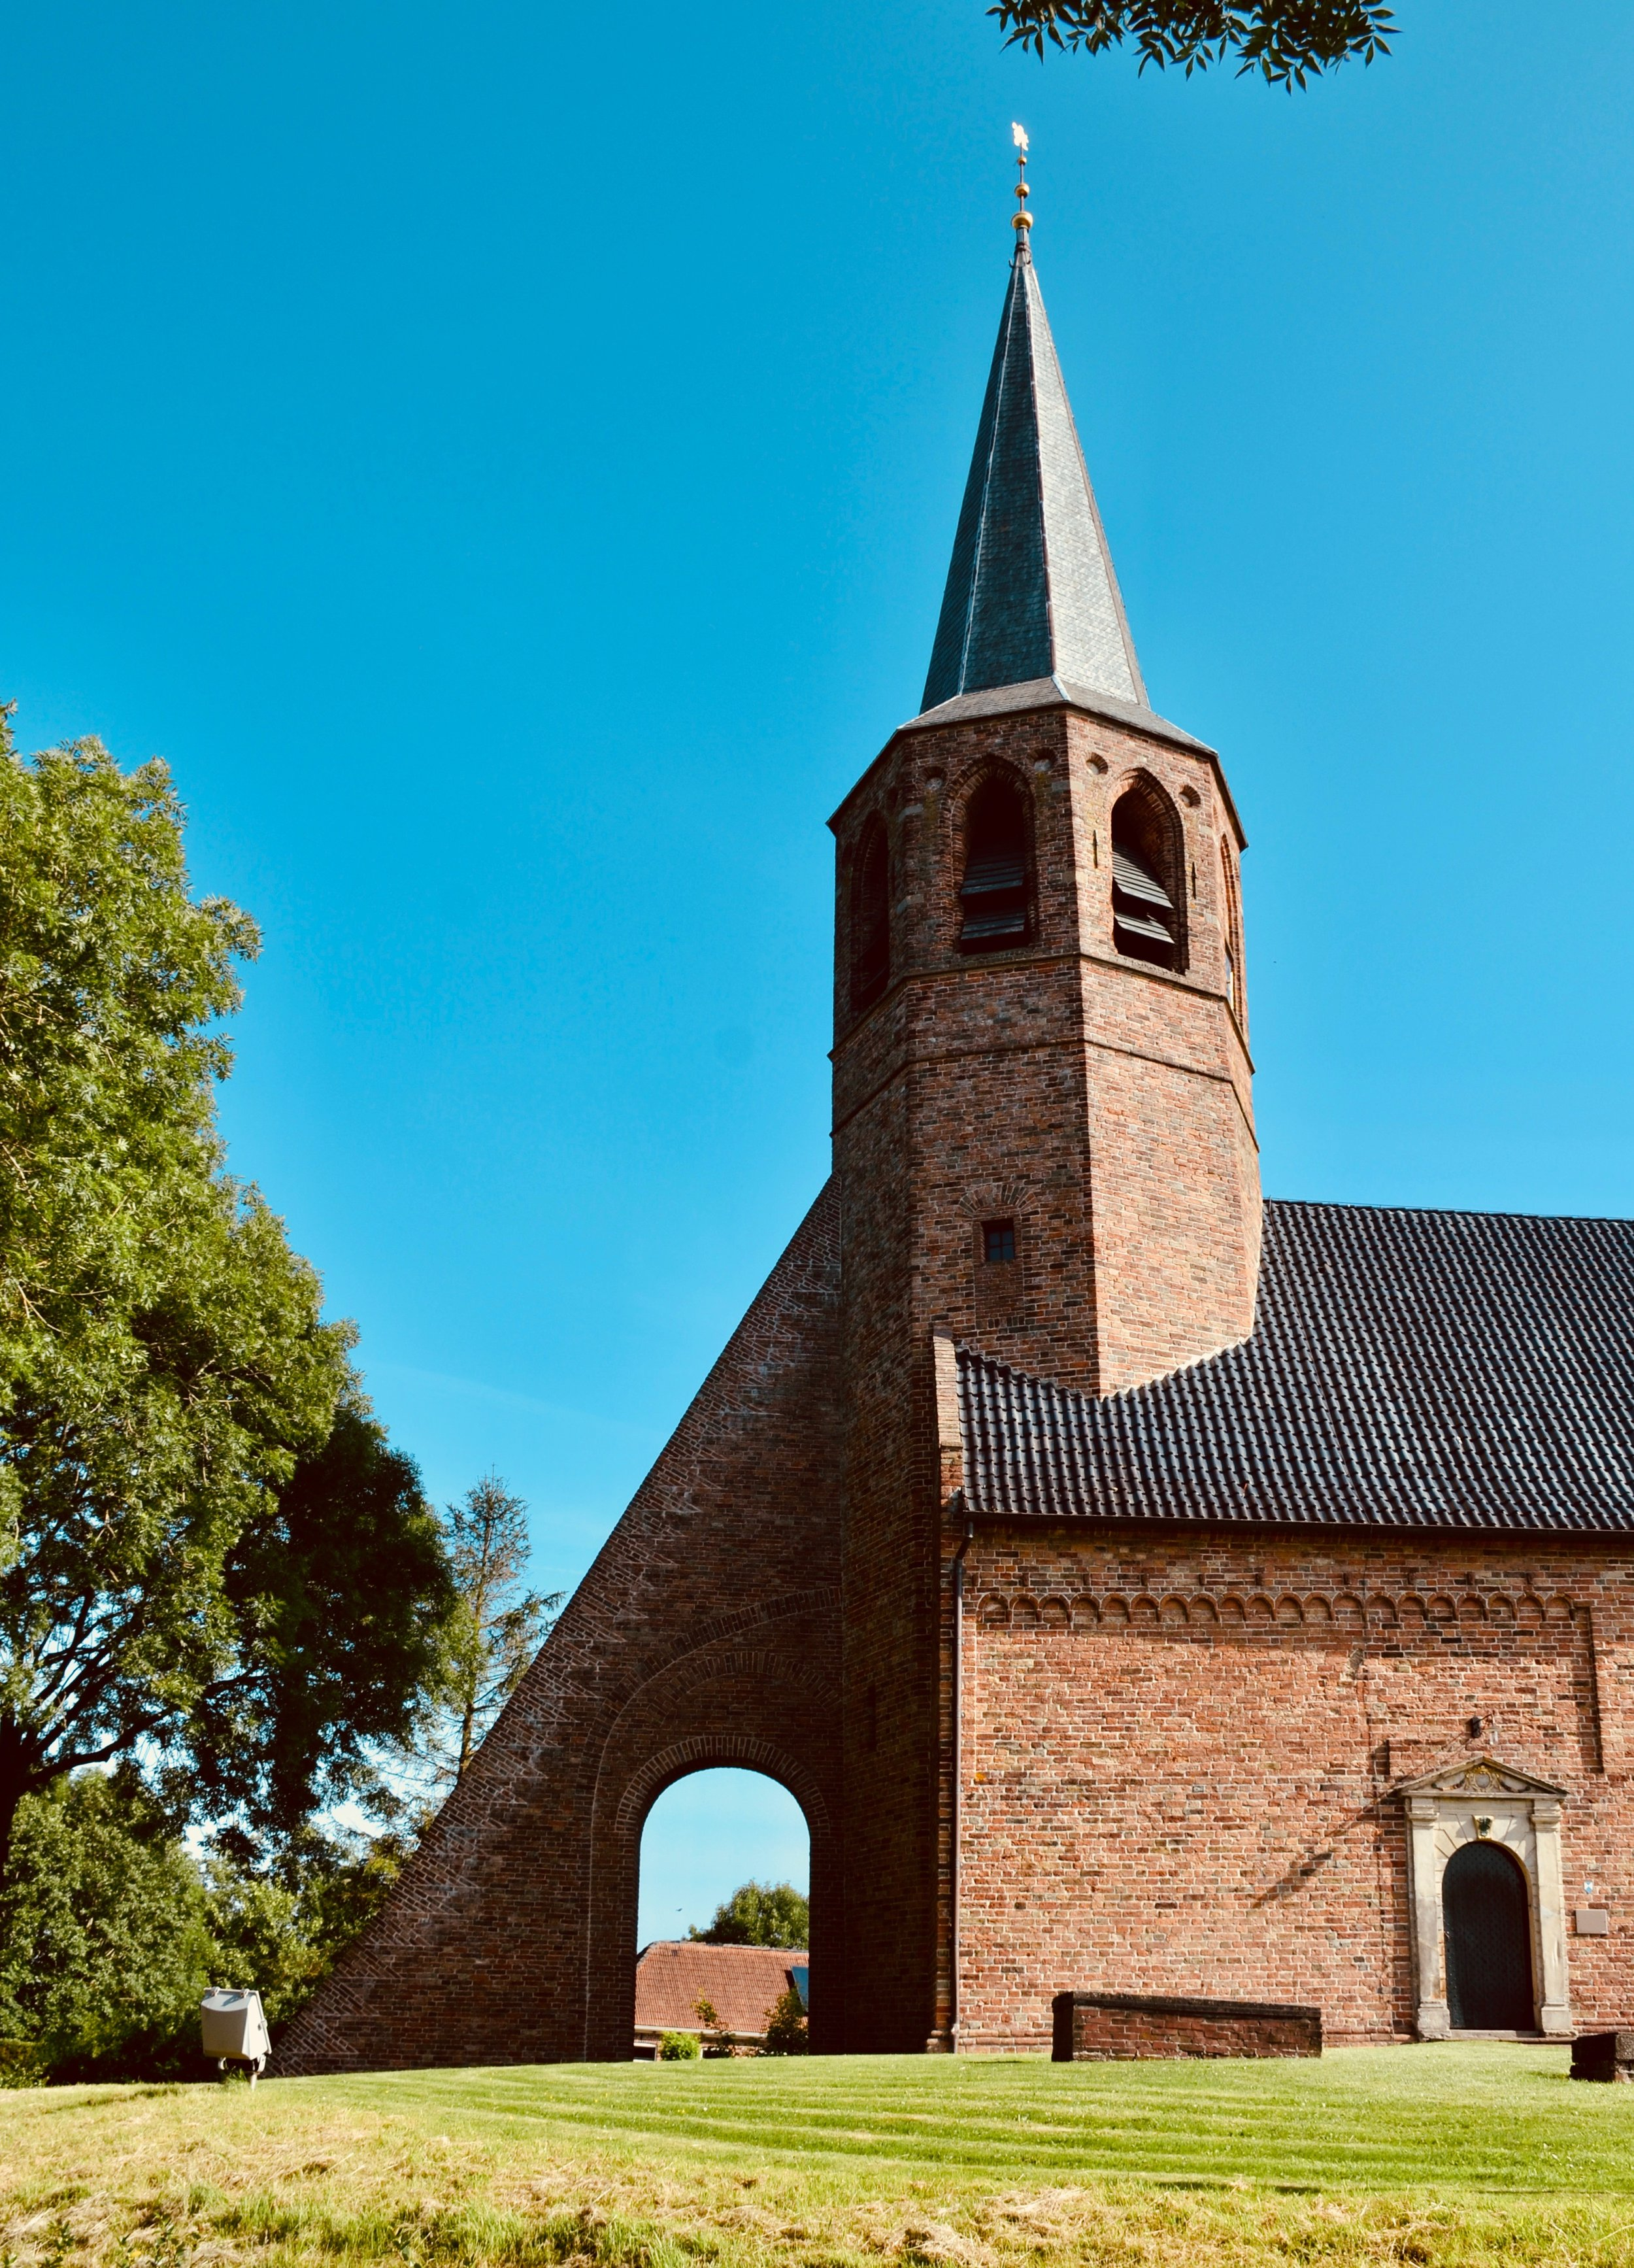 The village church in Kantens, Holland, with an indiscreet tower support.